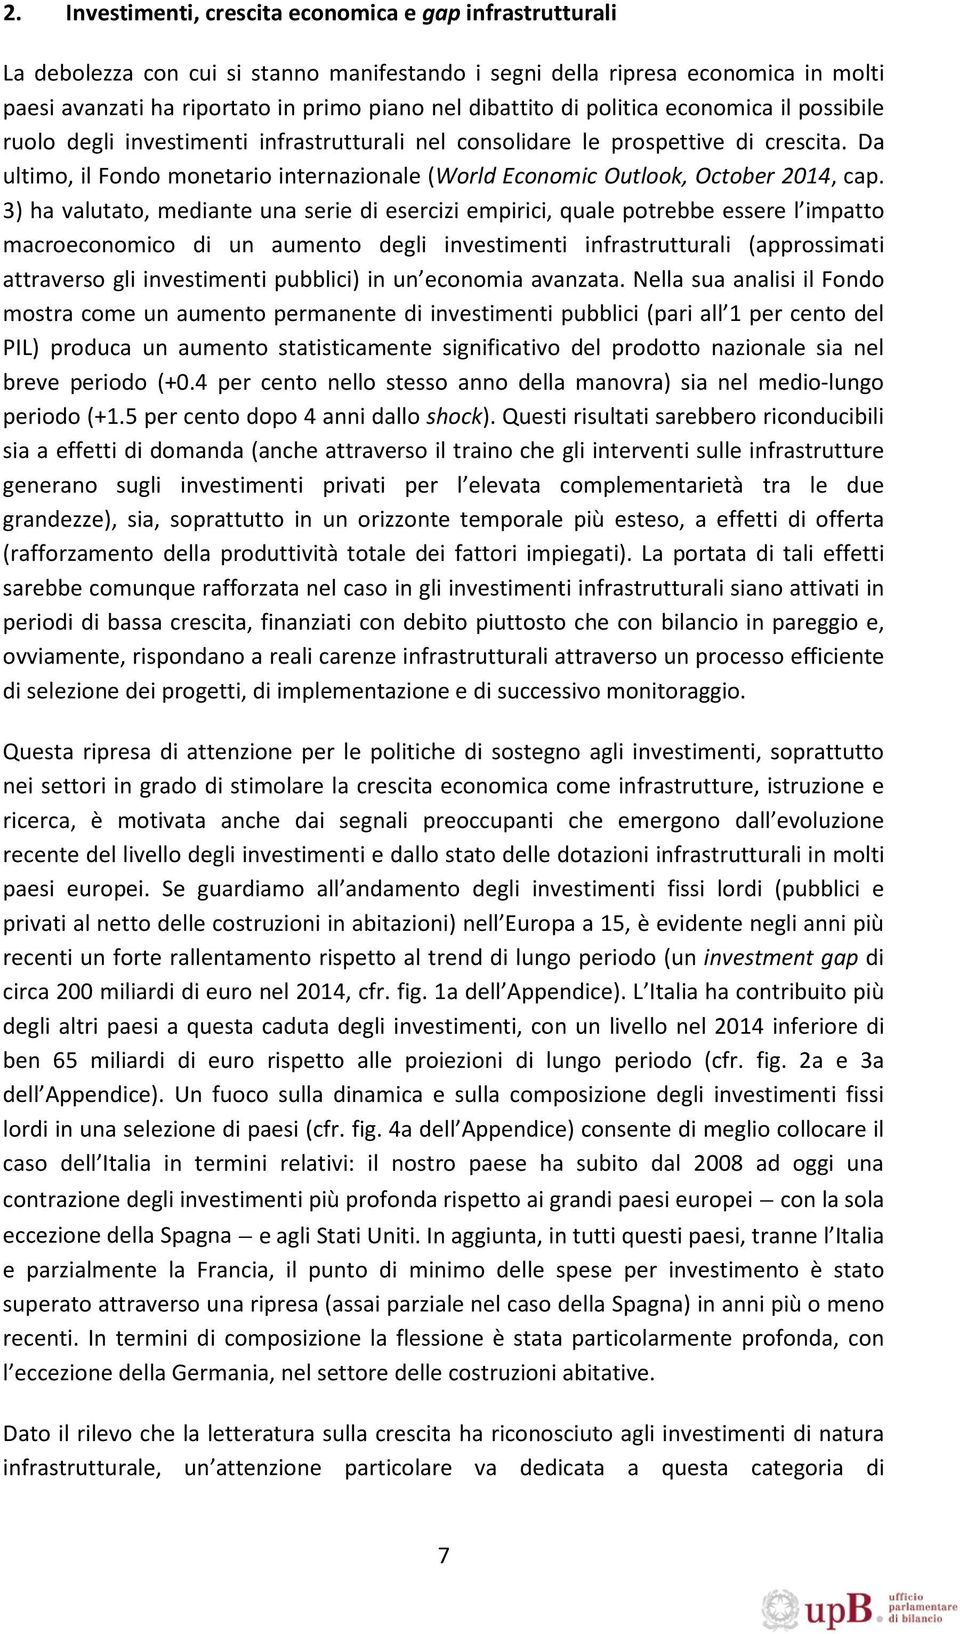 Da ultimo, il Fondo monetario internazionale (World Economic Outlook, October 2014, cap.